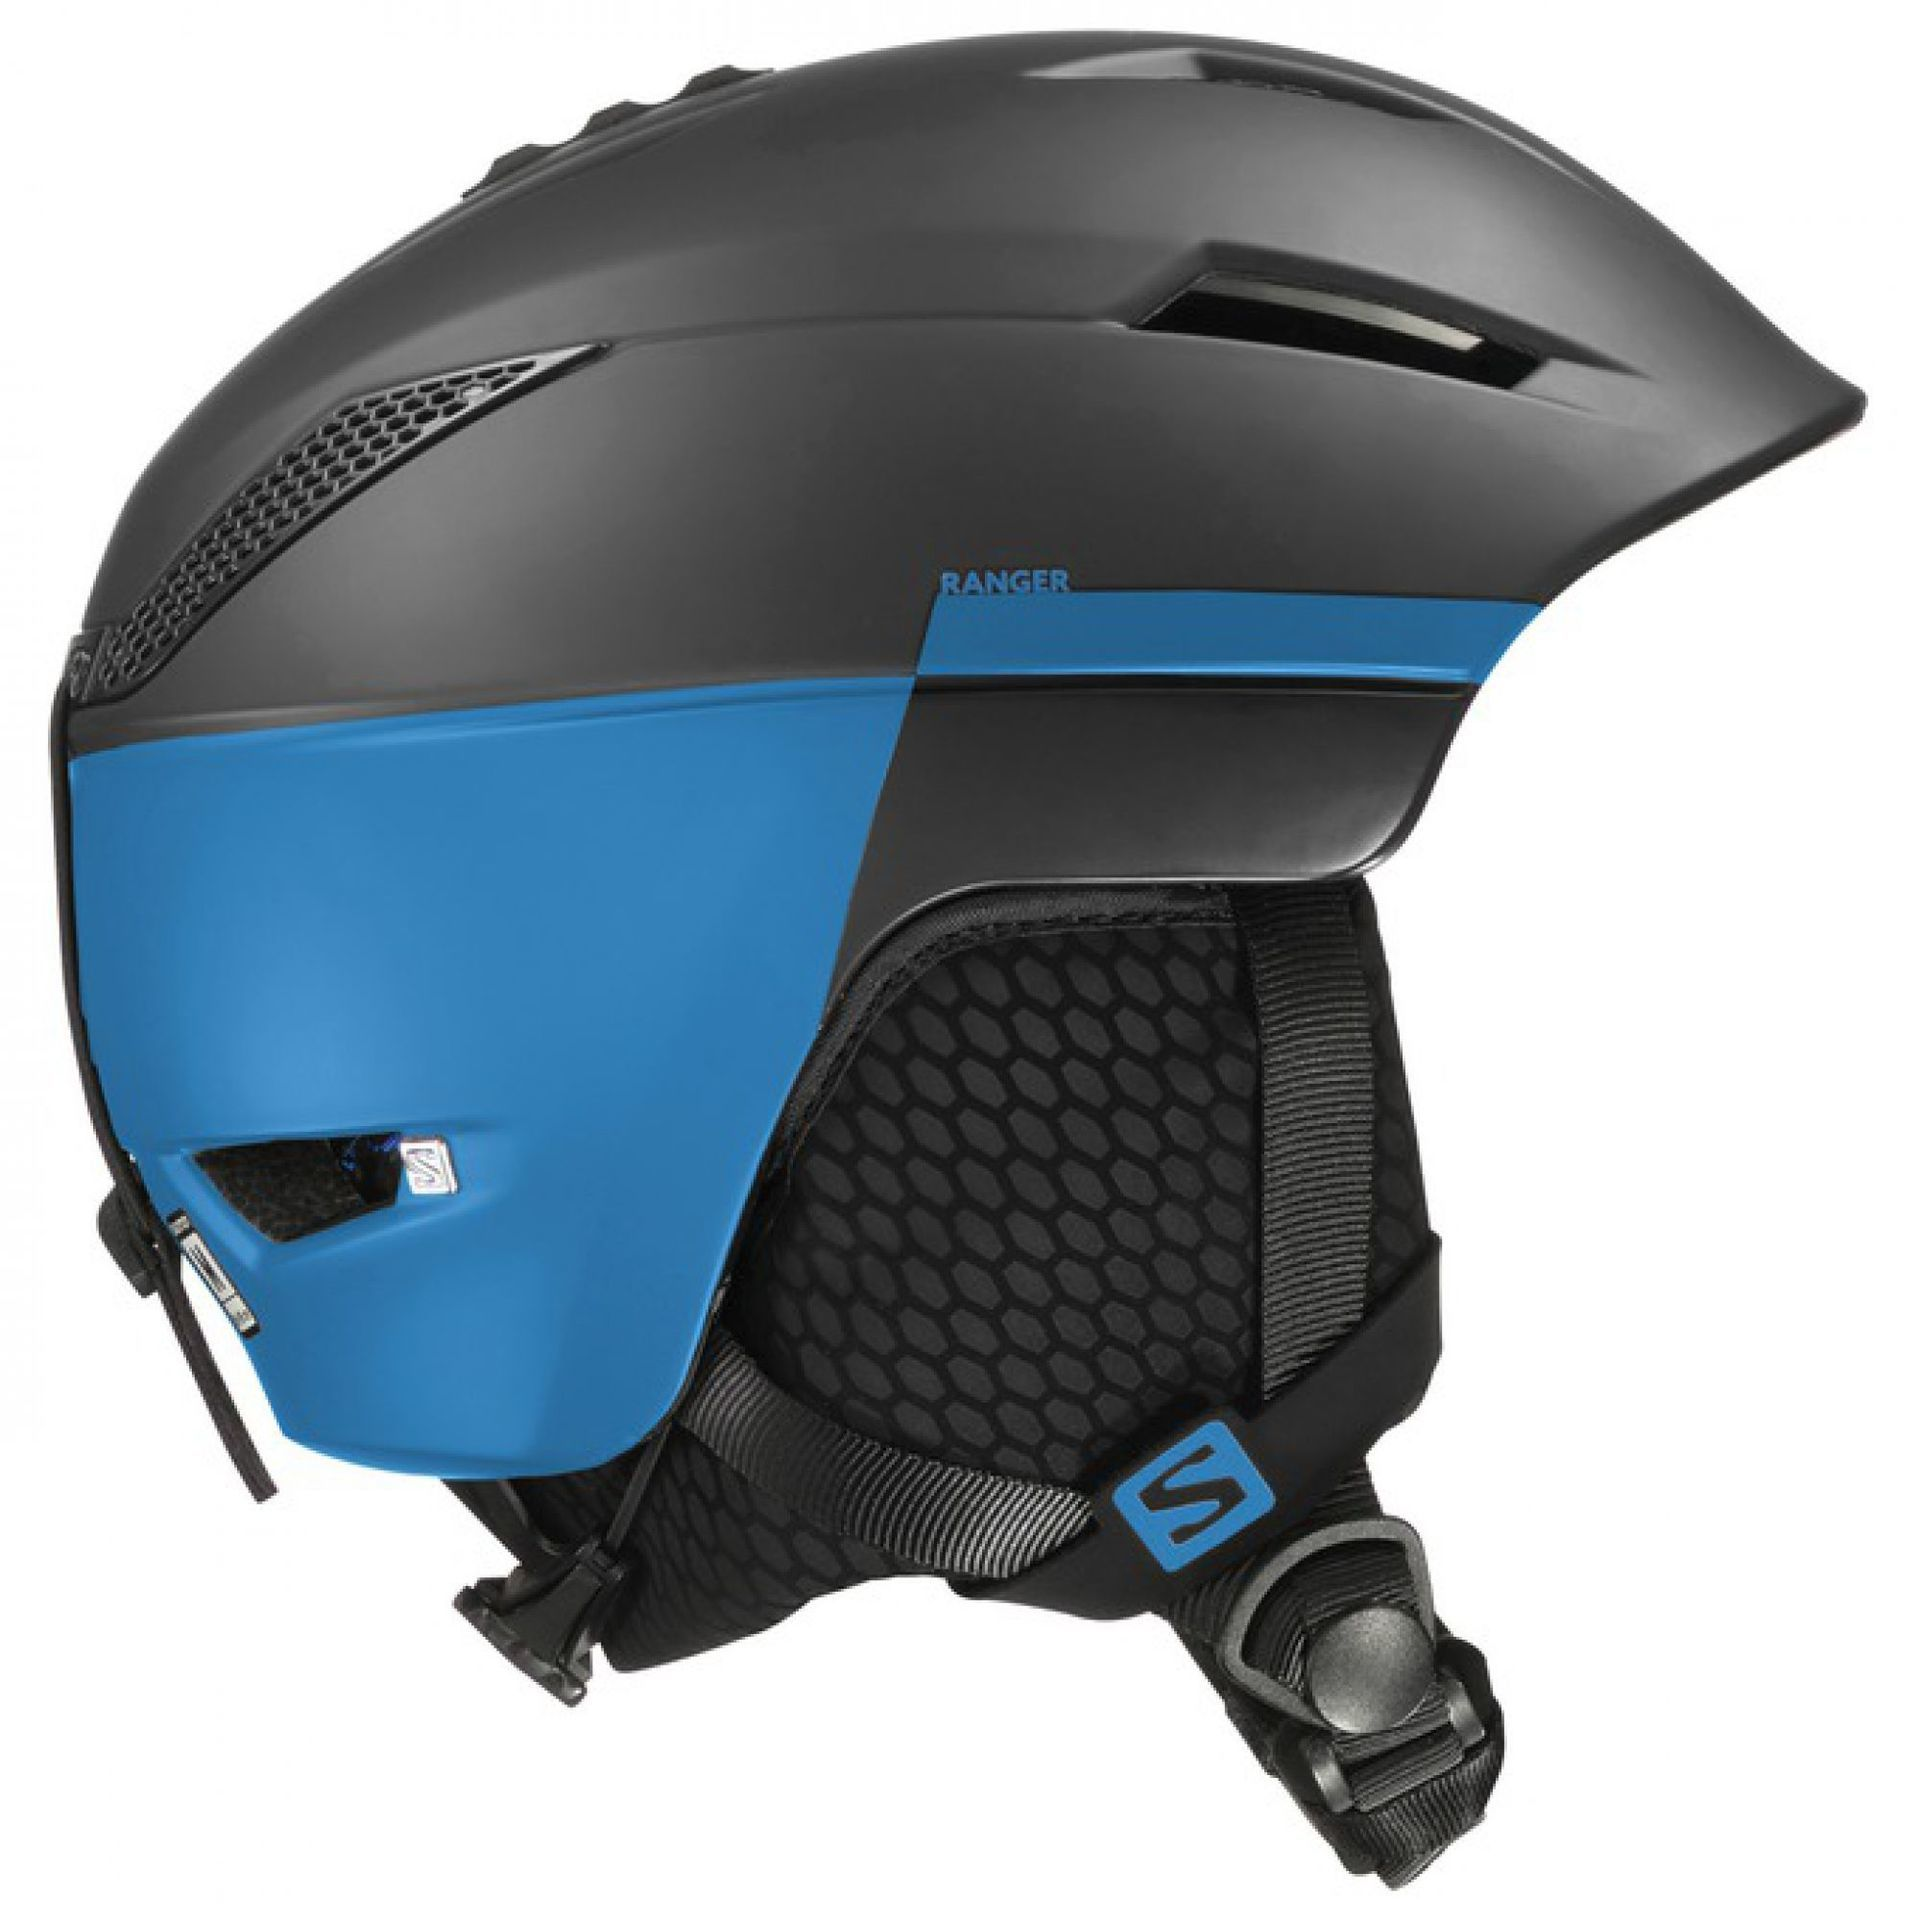 KASK SALOMON RANGER2 BLACK